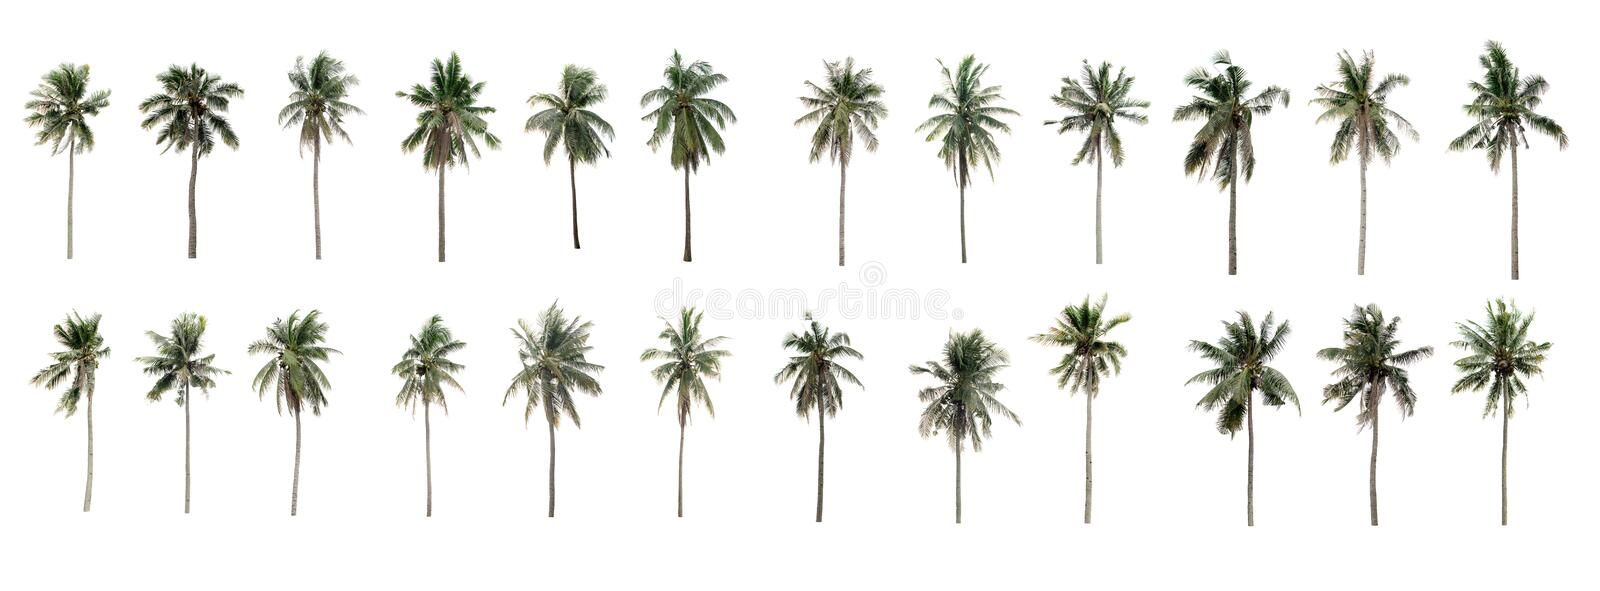 Beautiful Twenty-four coconut palm trees in the garden royalty free stock image